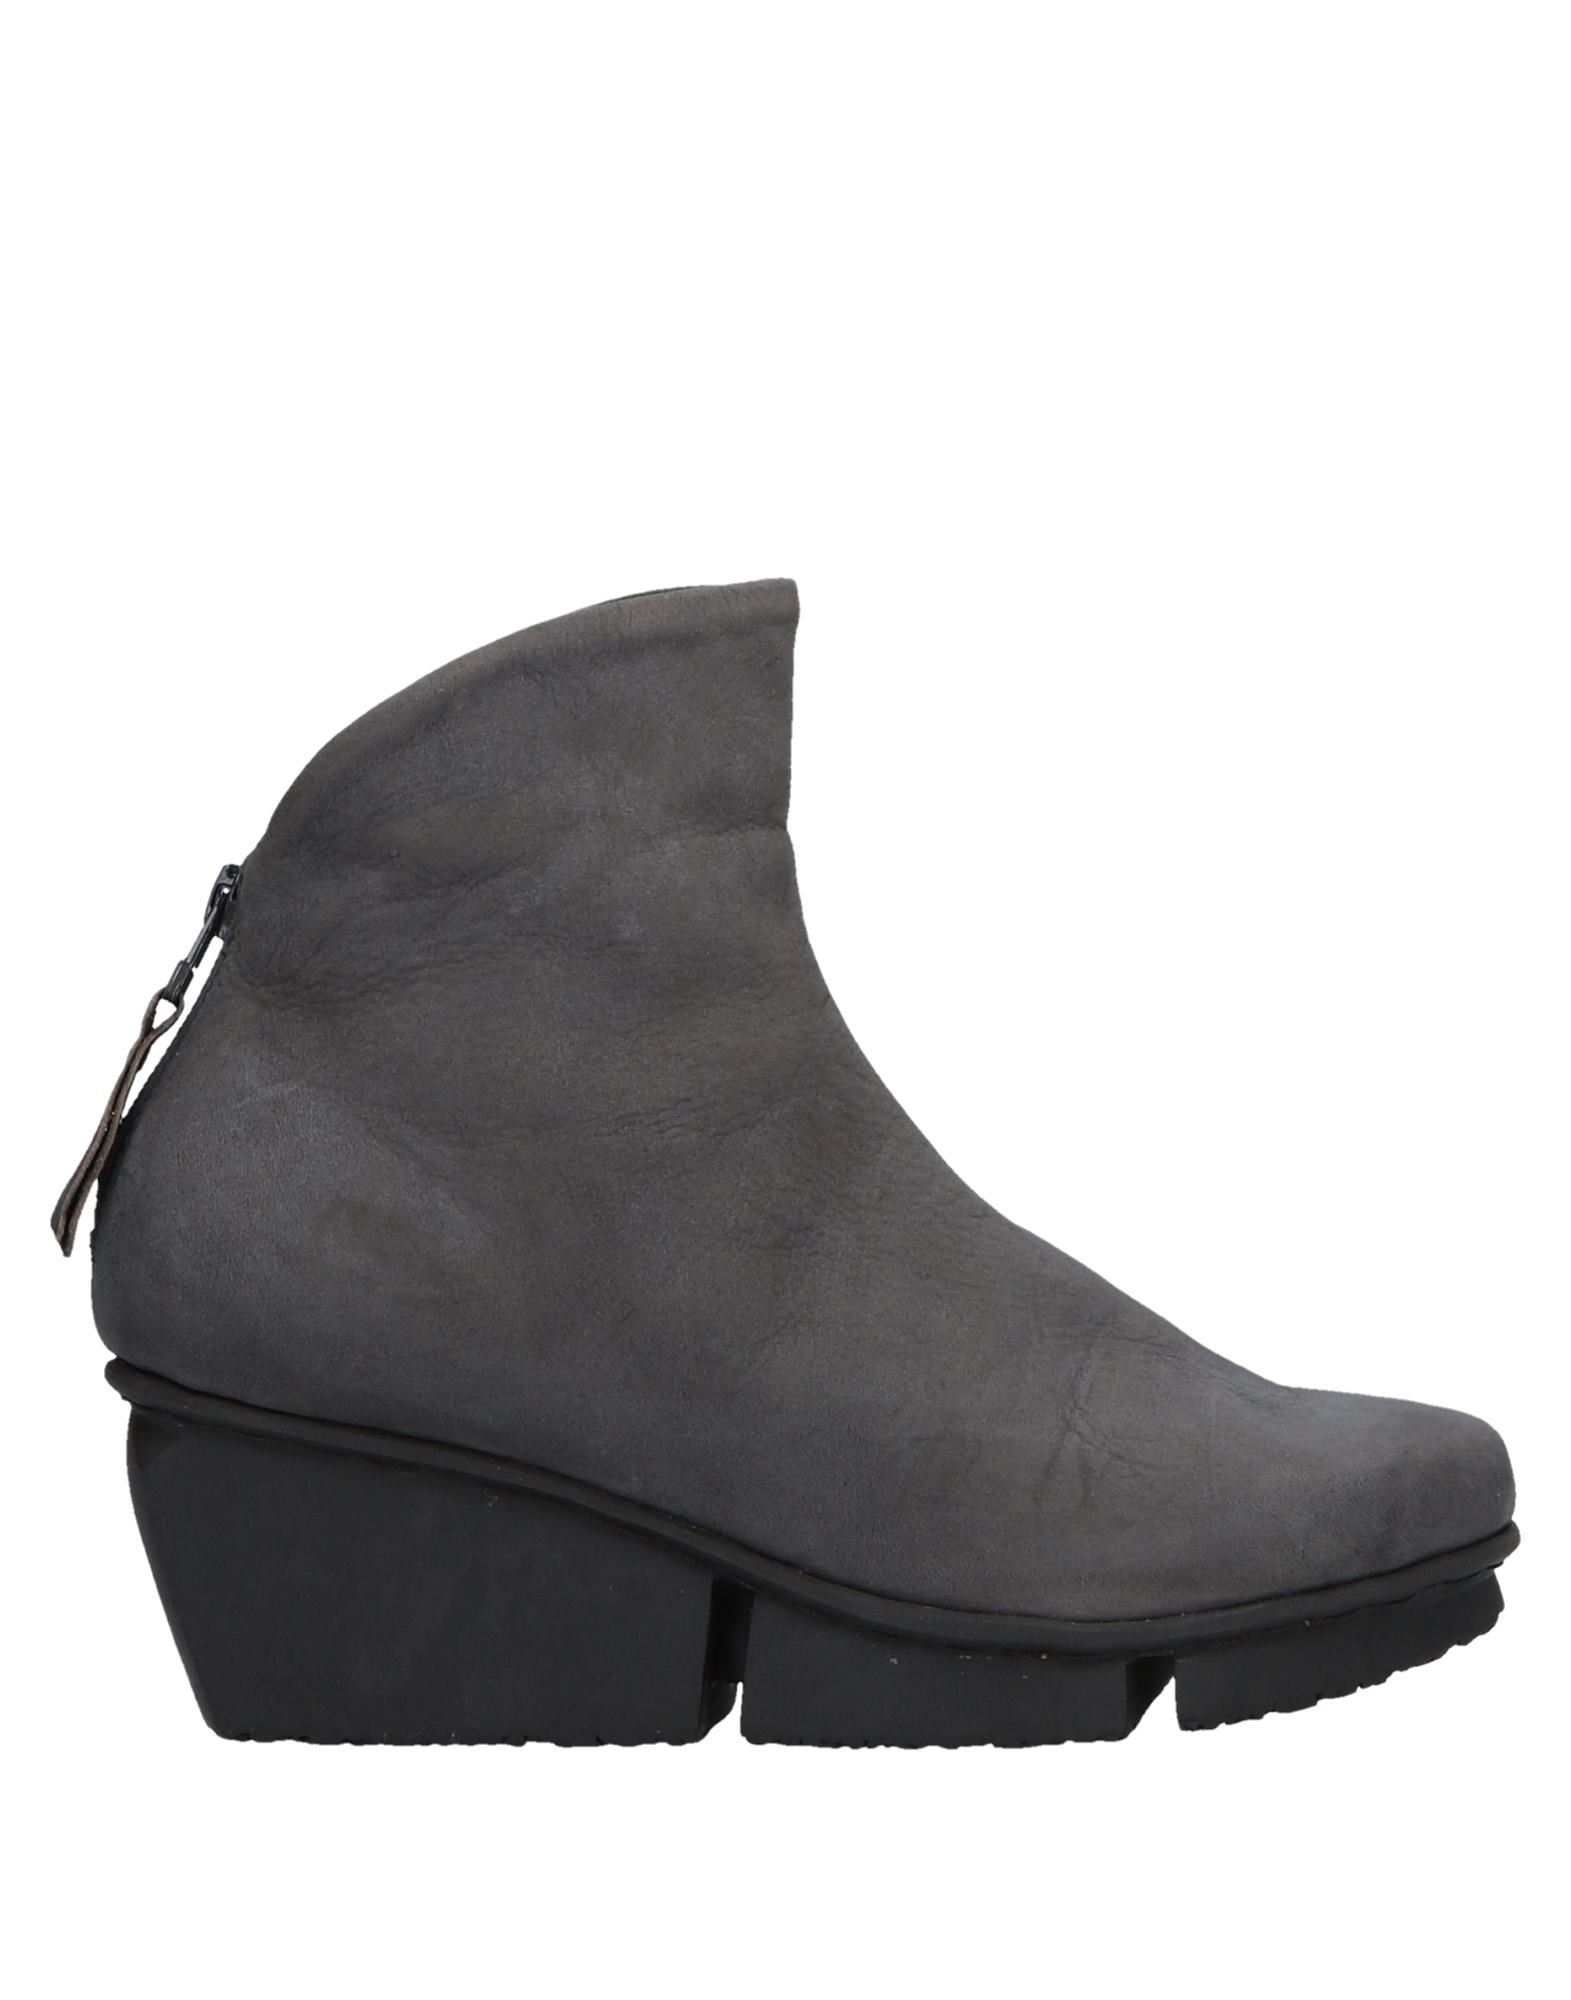 TRIPPEN Ankle Boots in Grey